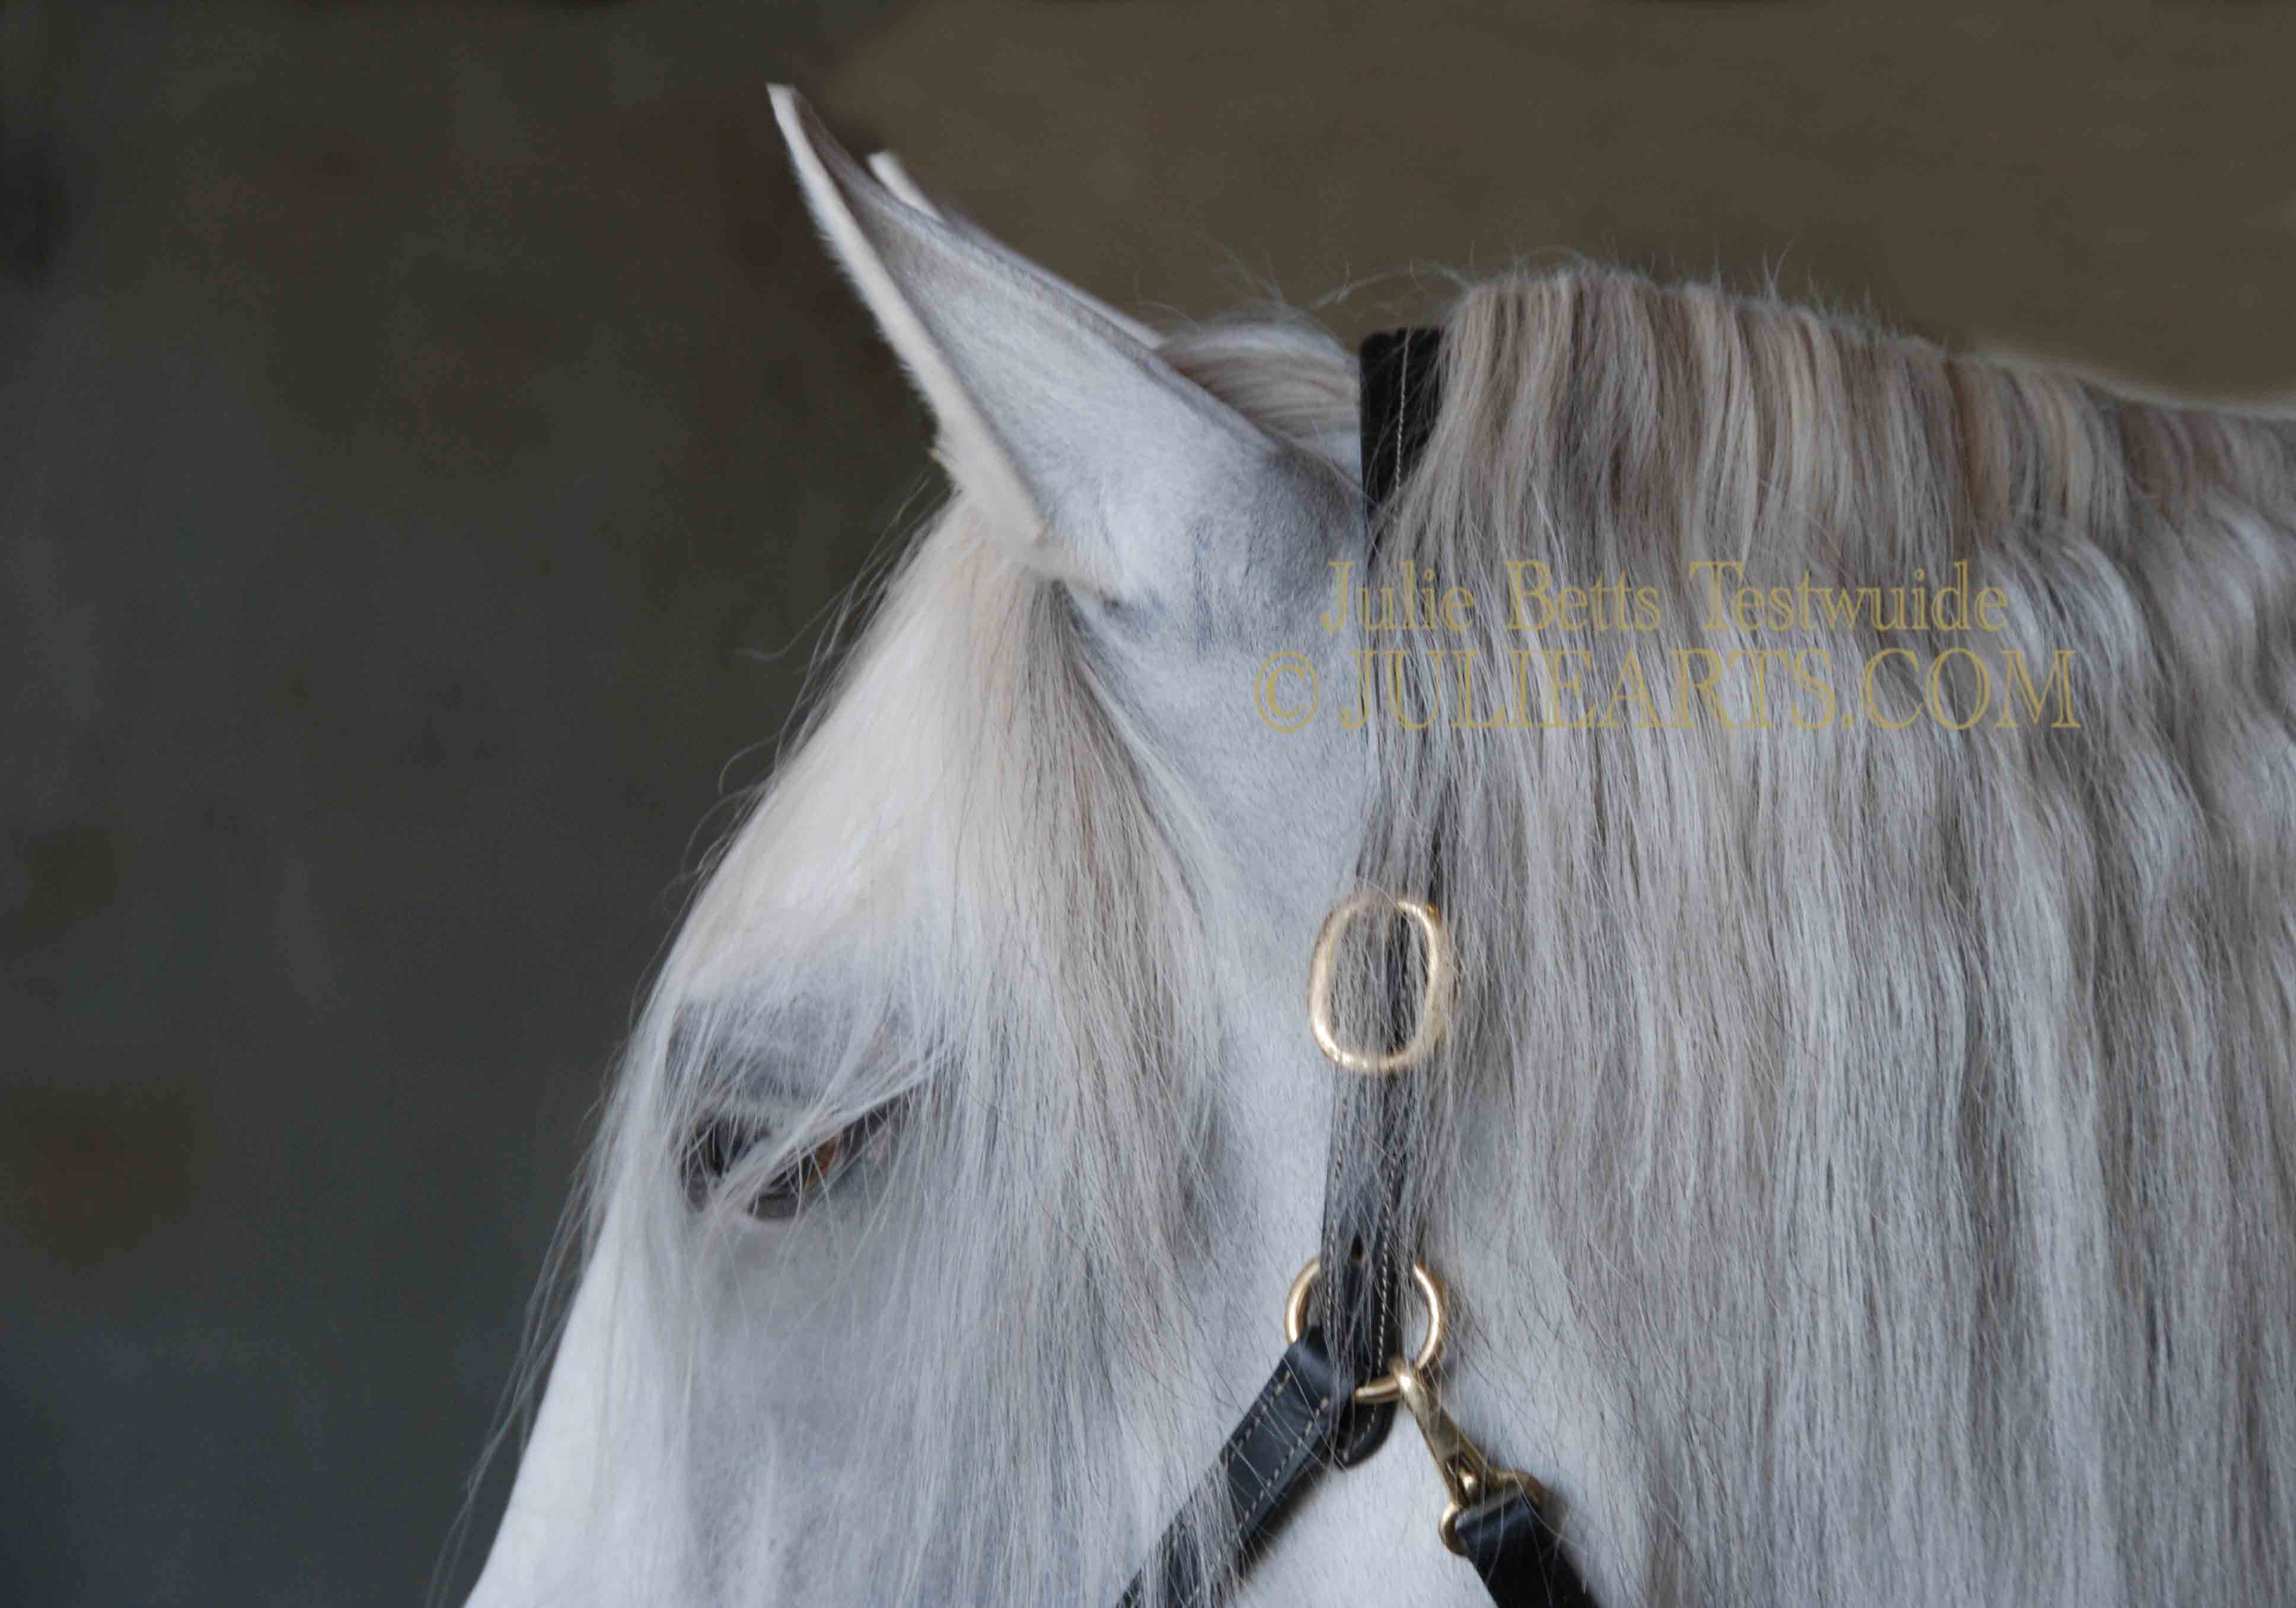 A White Horse in Bridle